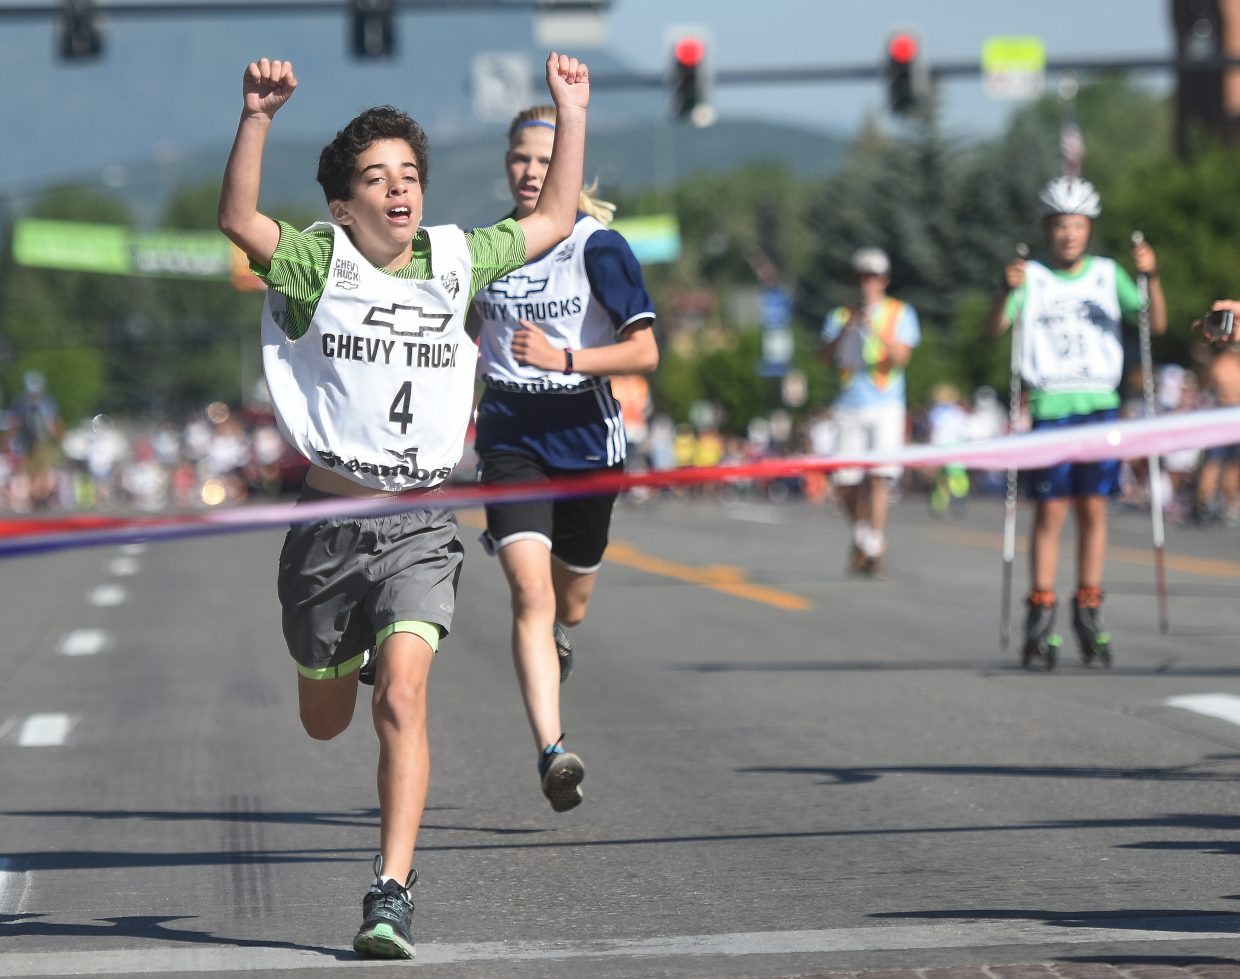 Zach Selzman crosses the finish line during the 1-kilometer Nordic combined running race on Tuesday in Steamboat Springs.